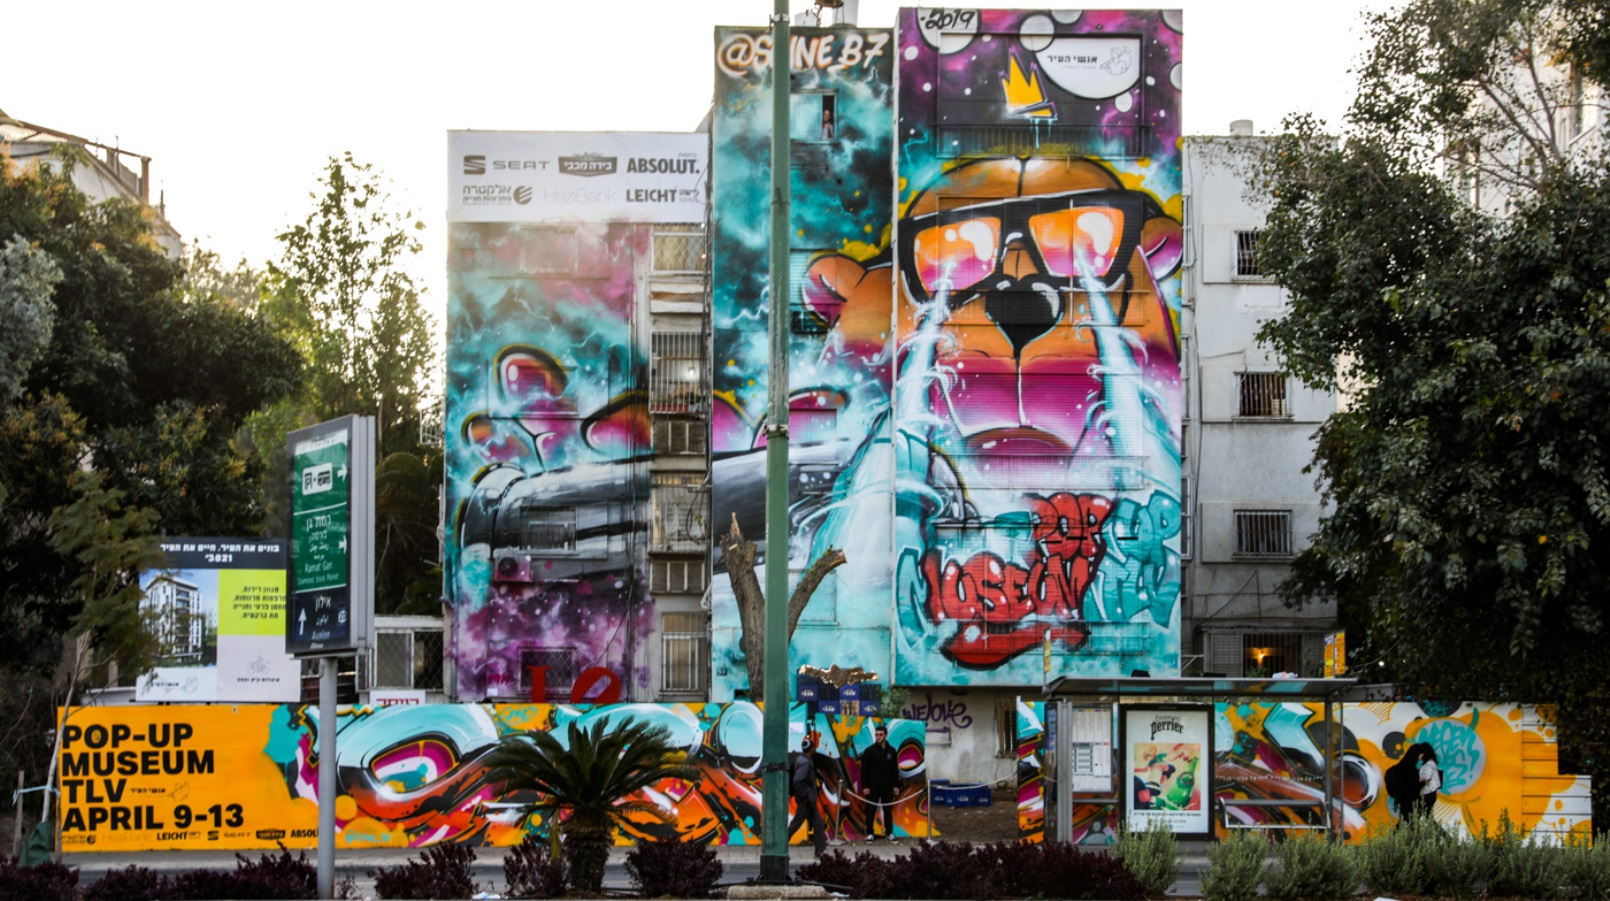 Street artists turn tel aviv building into graffiti paradise